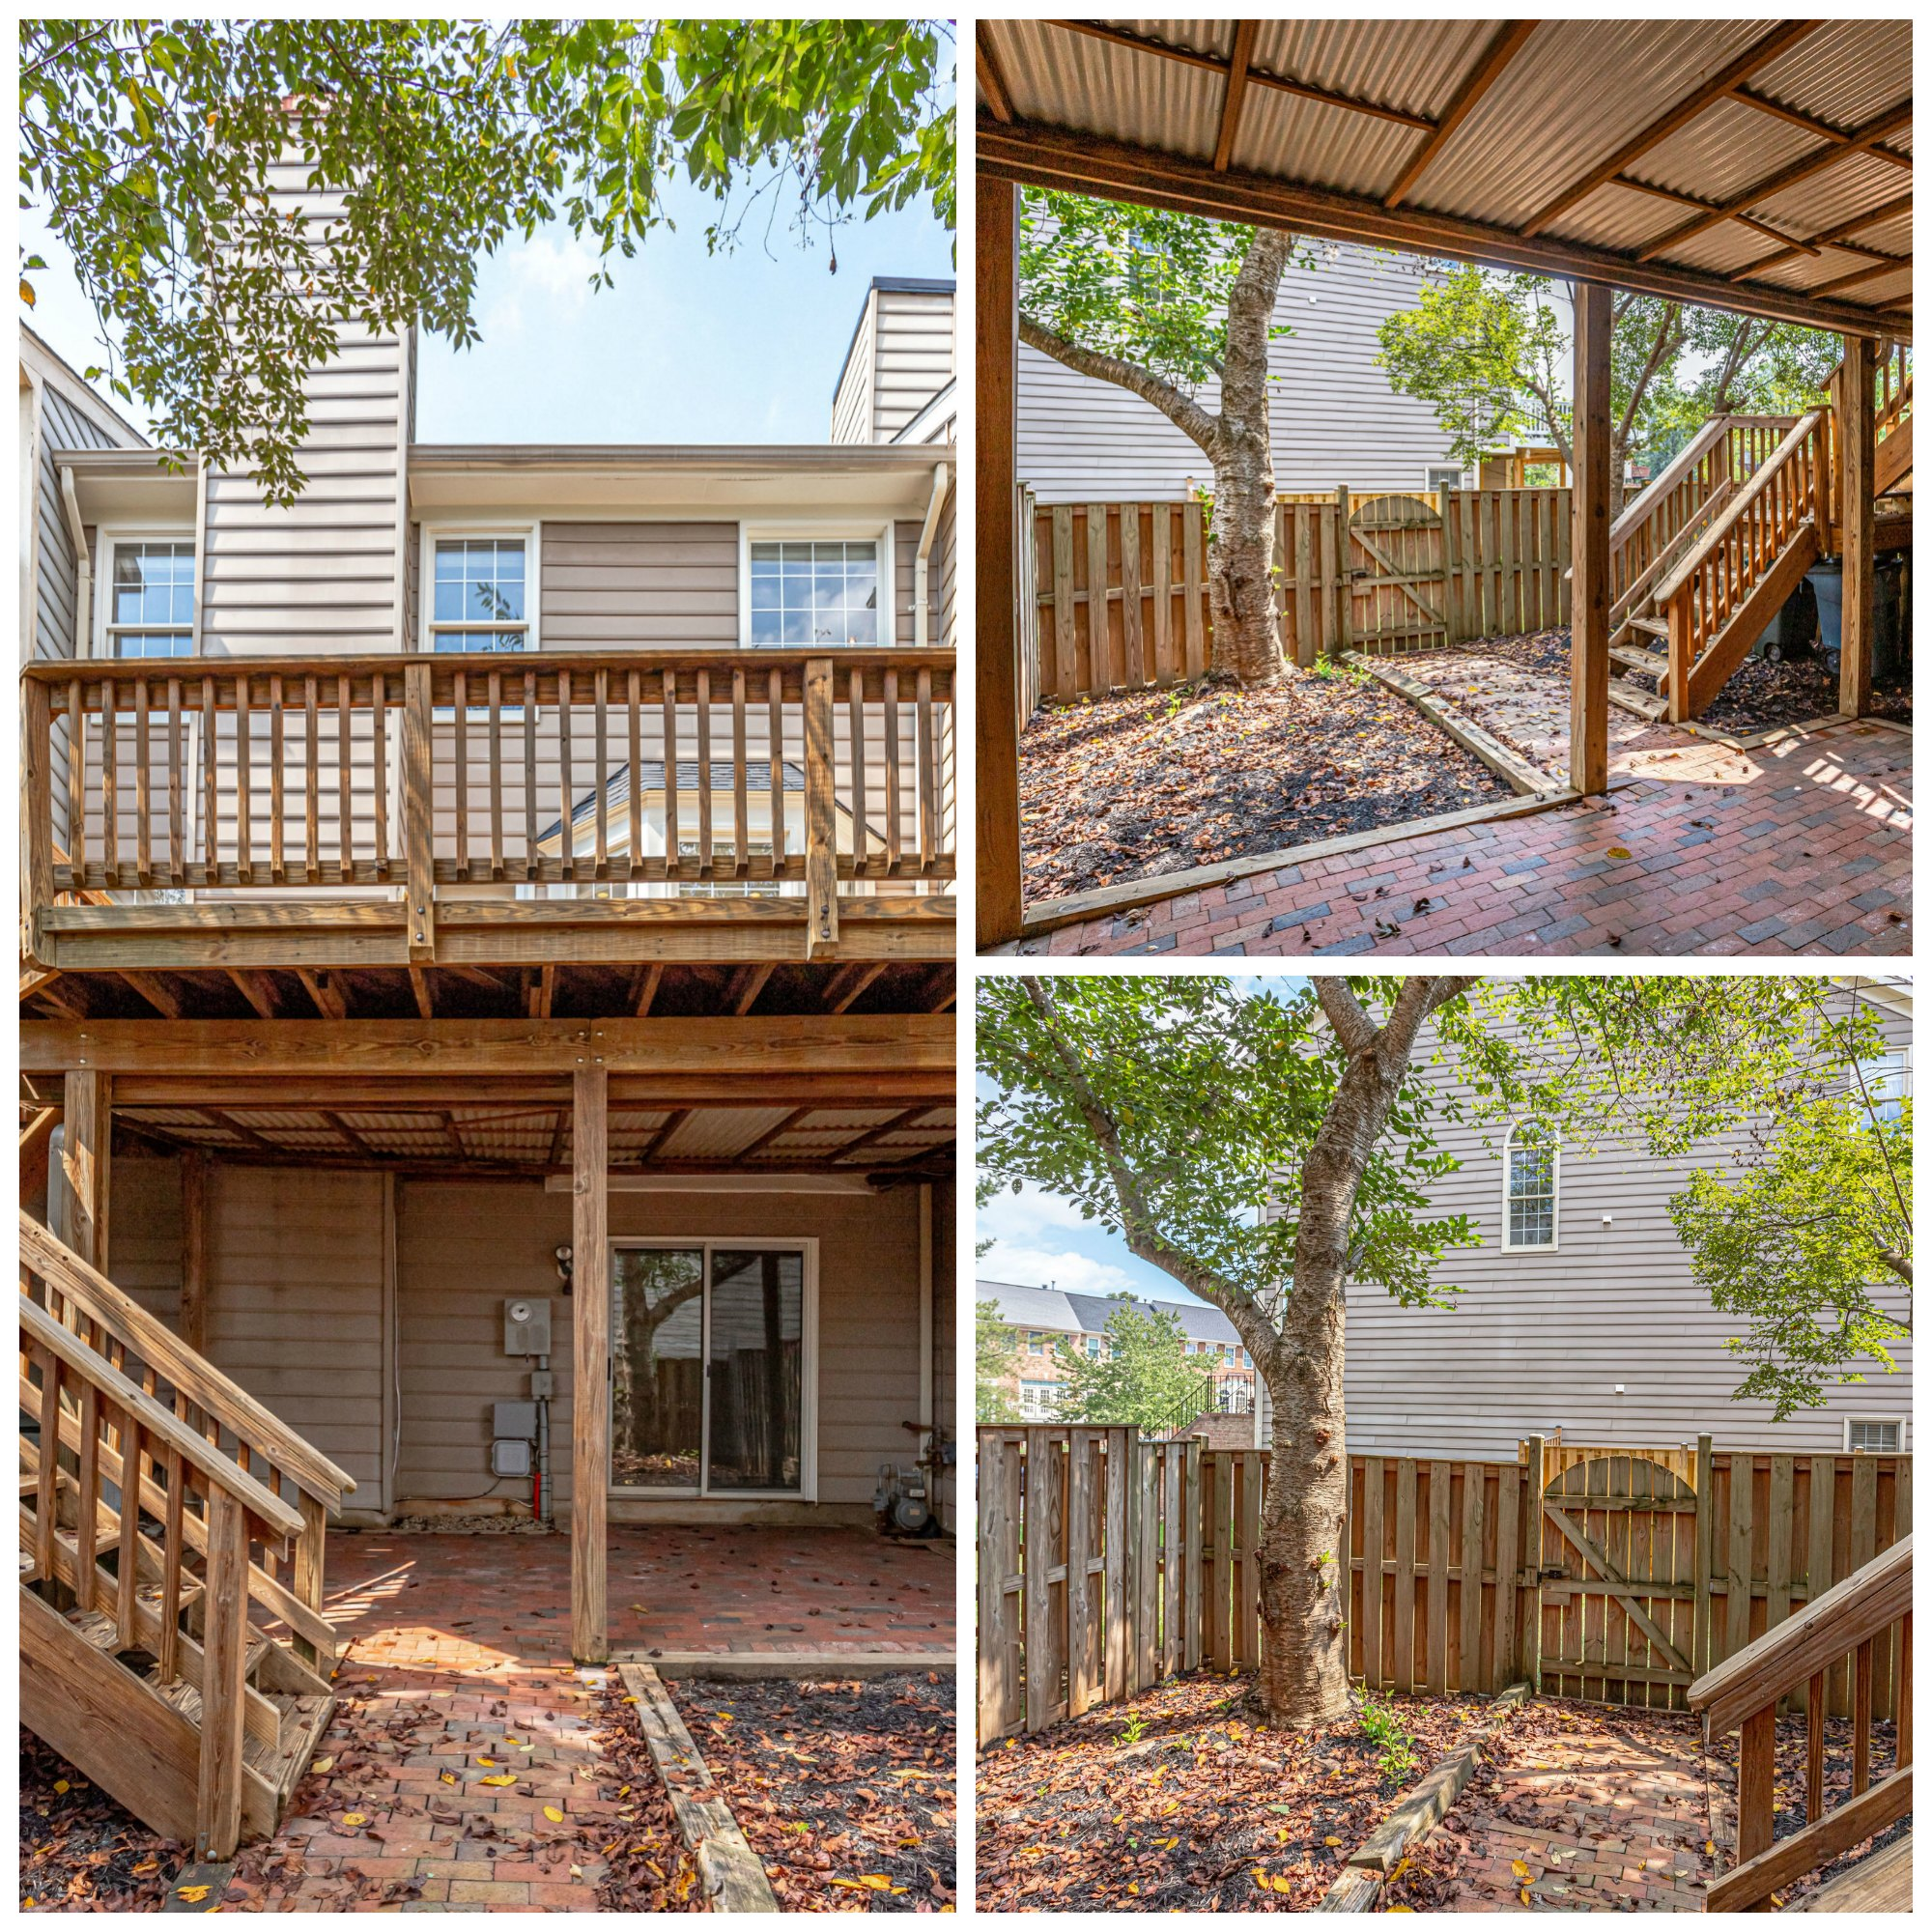 20352 Burnley Sq, Sterling- Deck and Patio